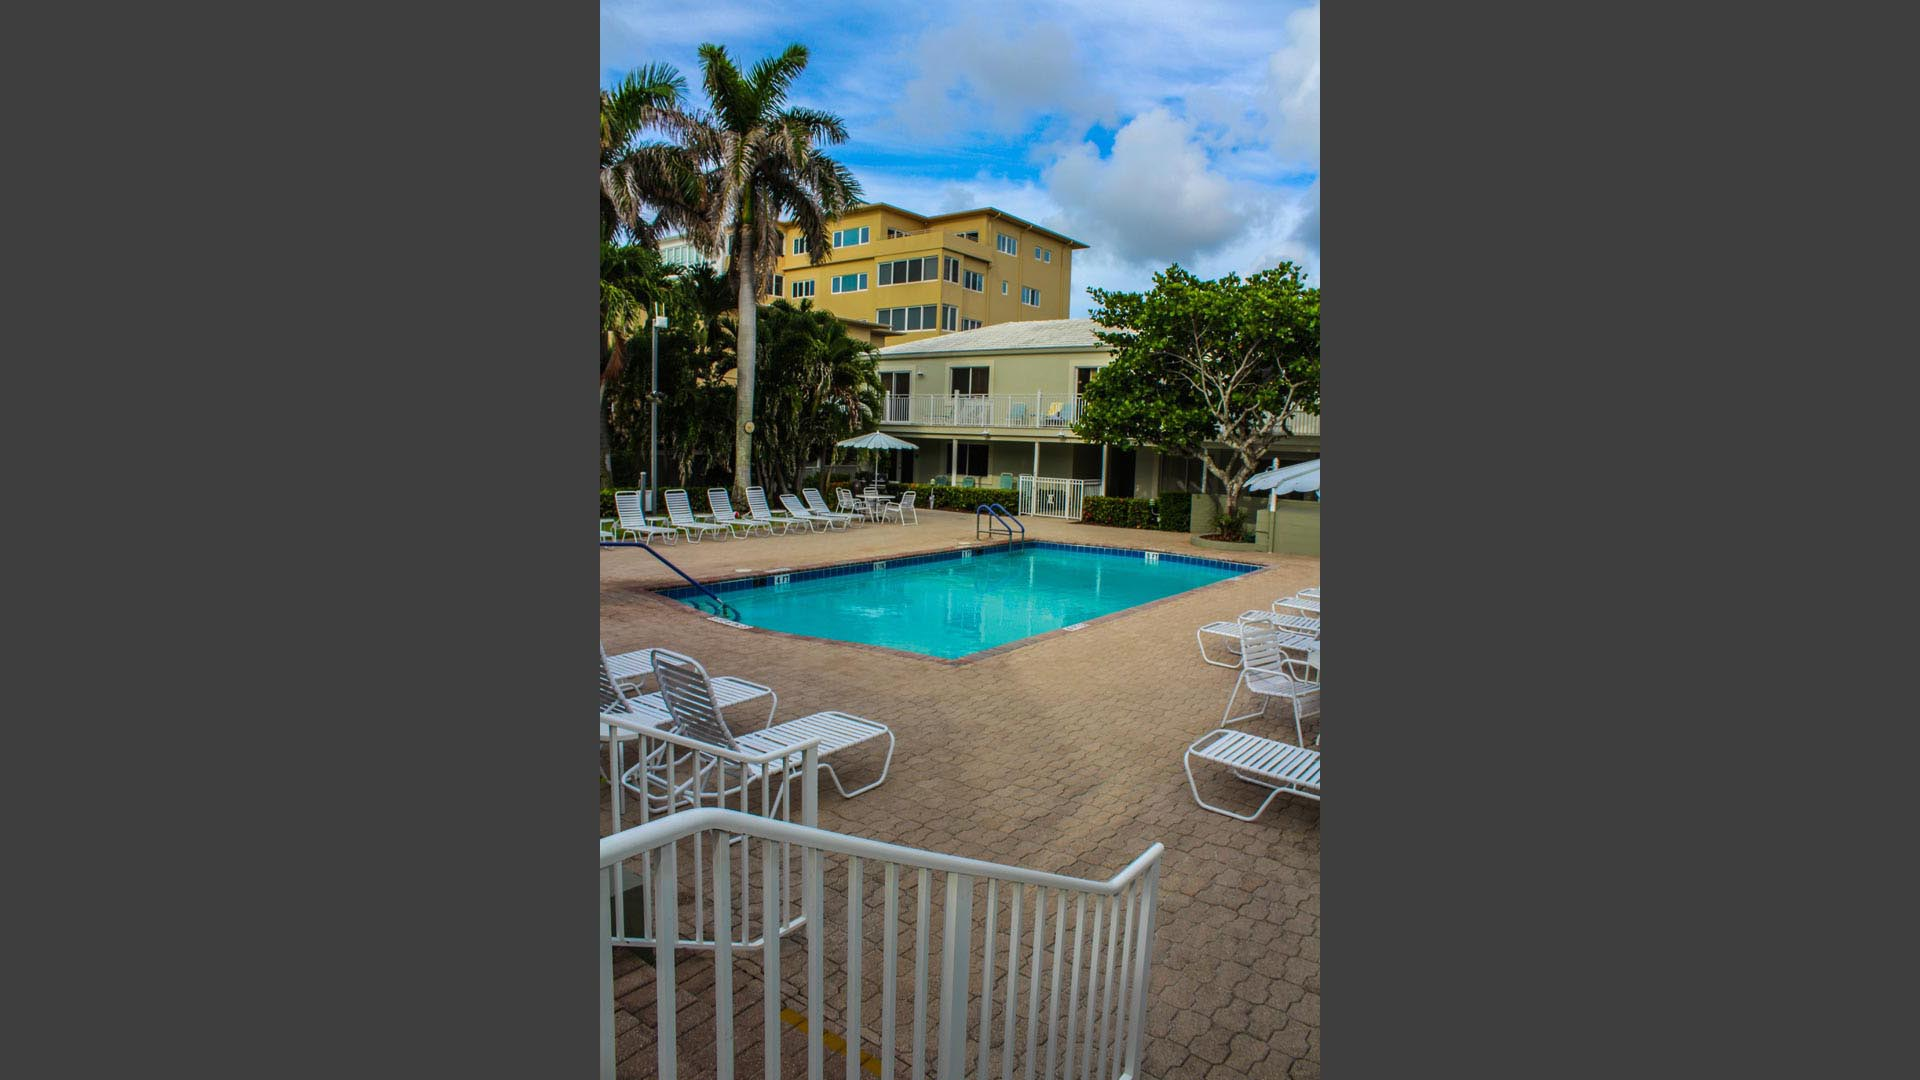 Birkshire By The Sea Pool